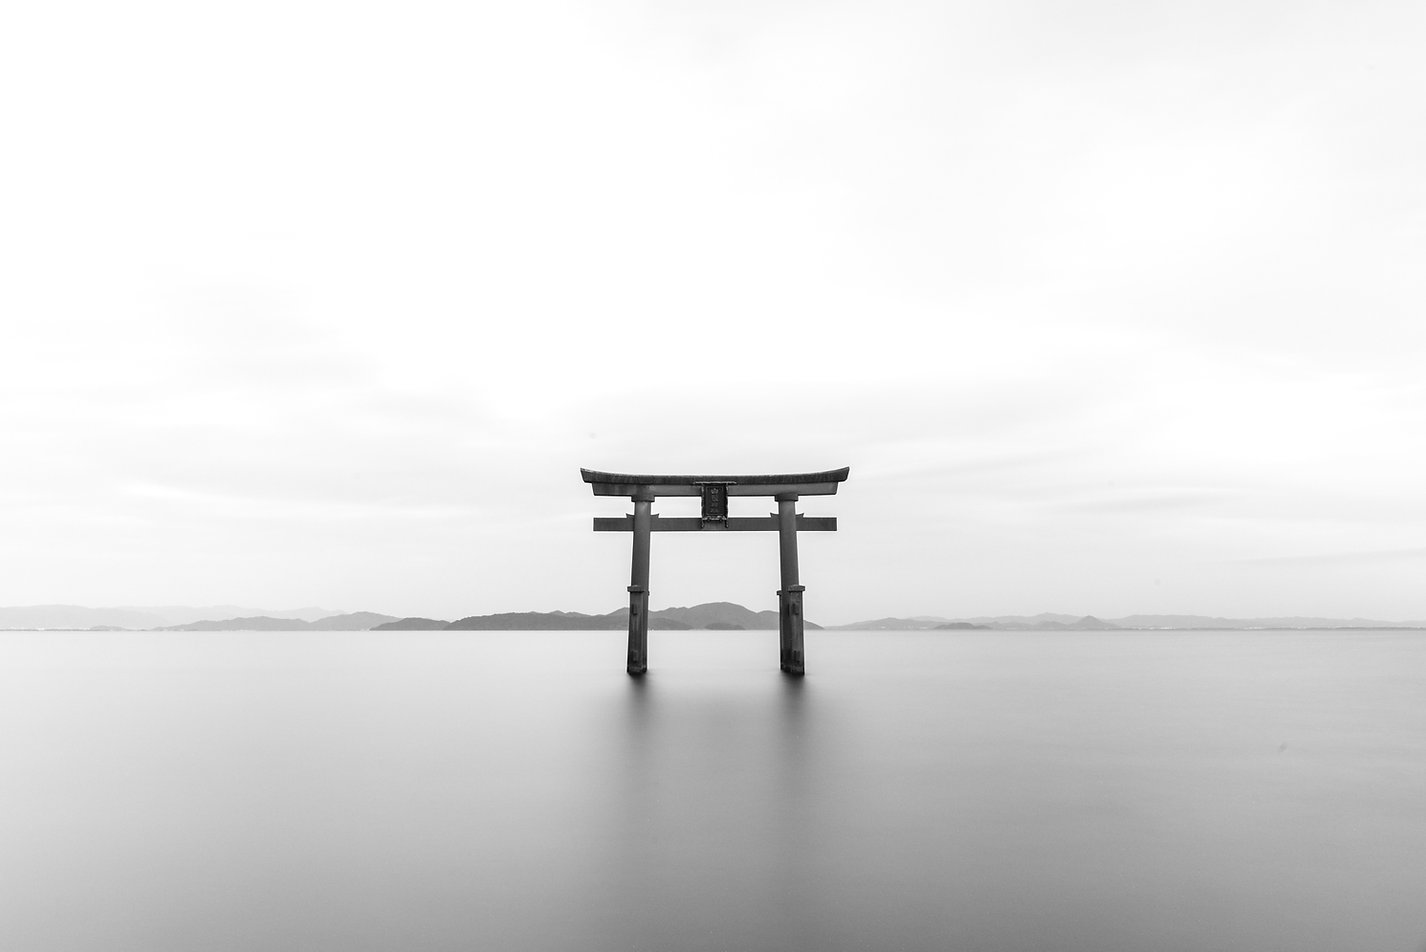 ancient-architecture-asia-bench-301614 c